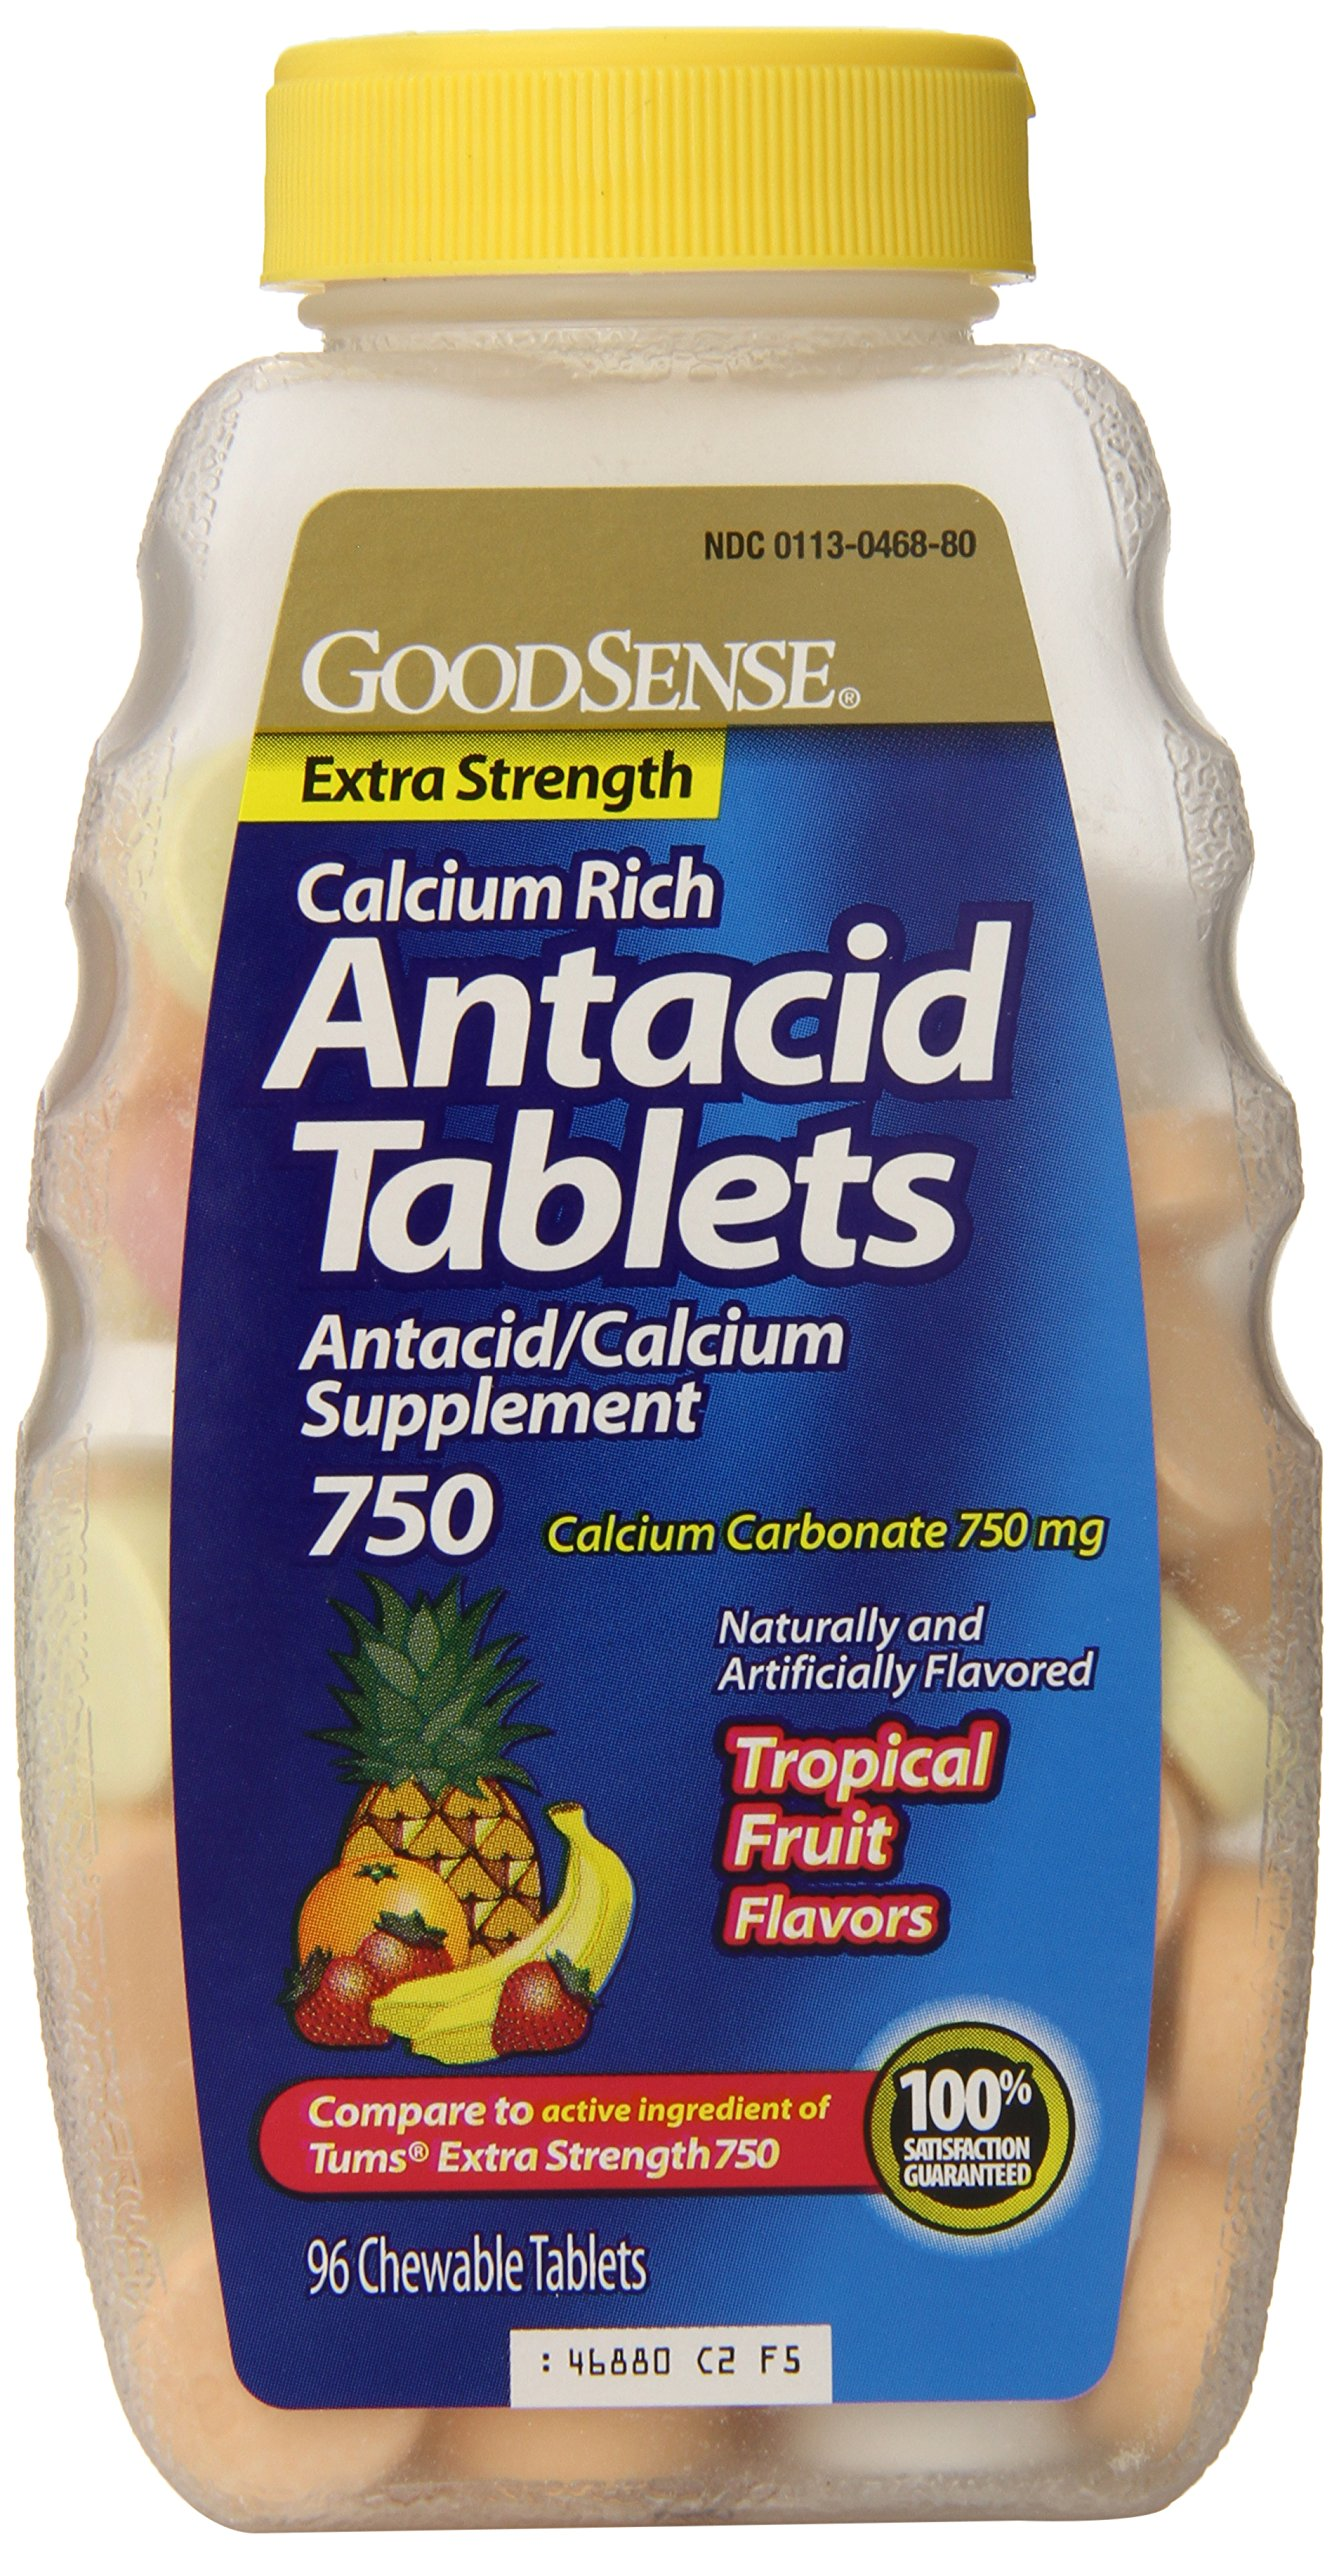 GoodSense Calcium Antacid Extra Strength Tablets, Tropical Flavored, 750 mg, 96-Count (Pack of 24) by Good Sense